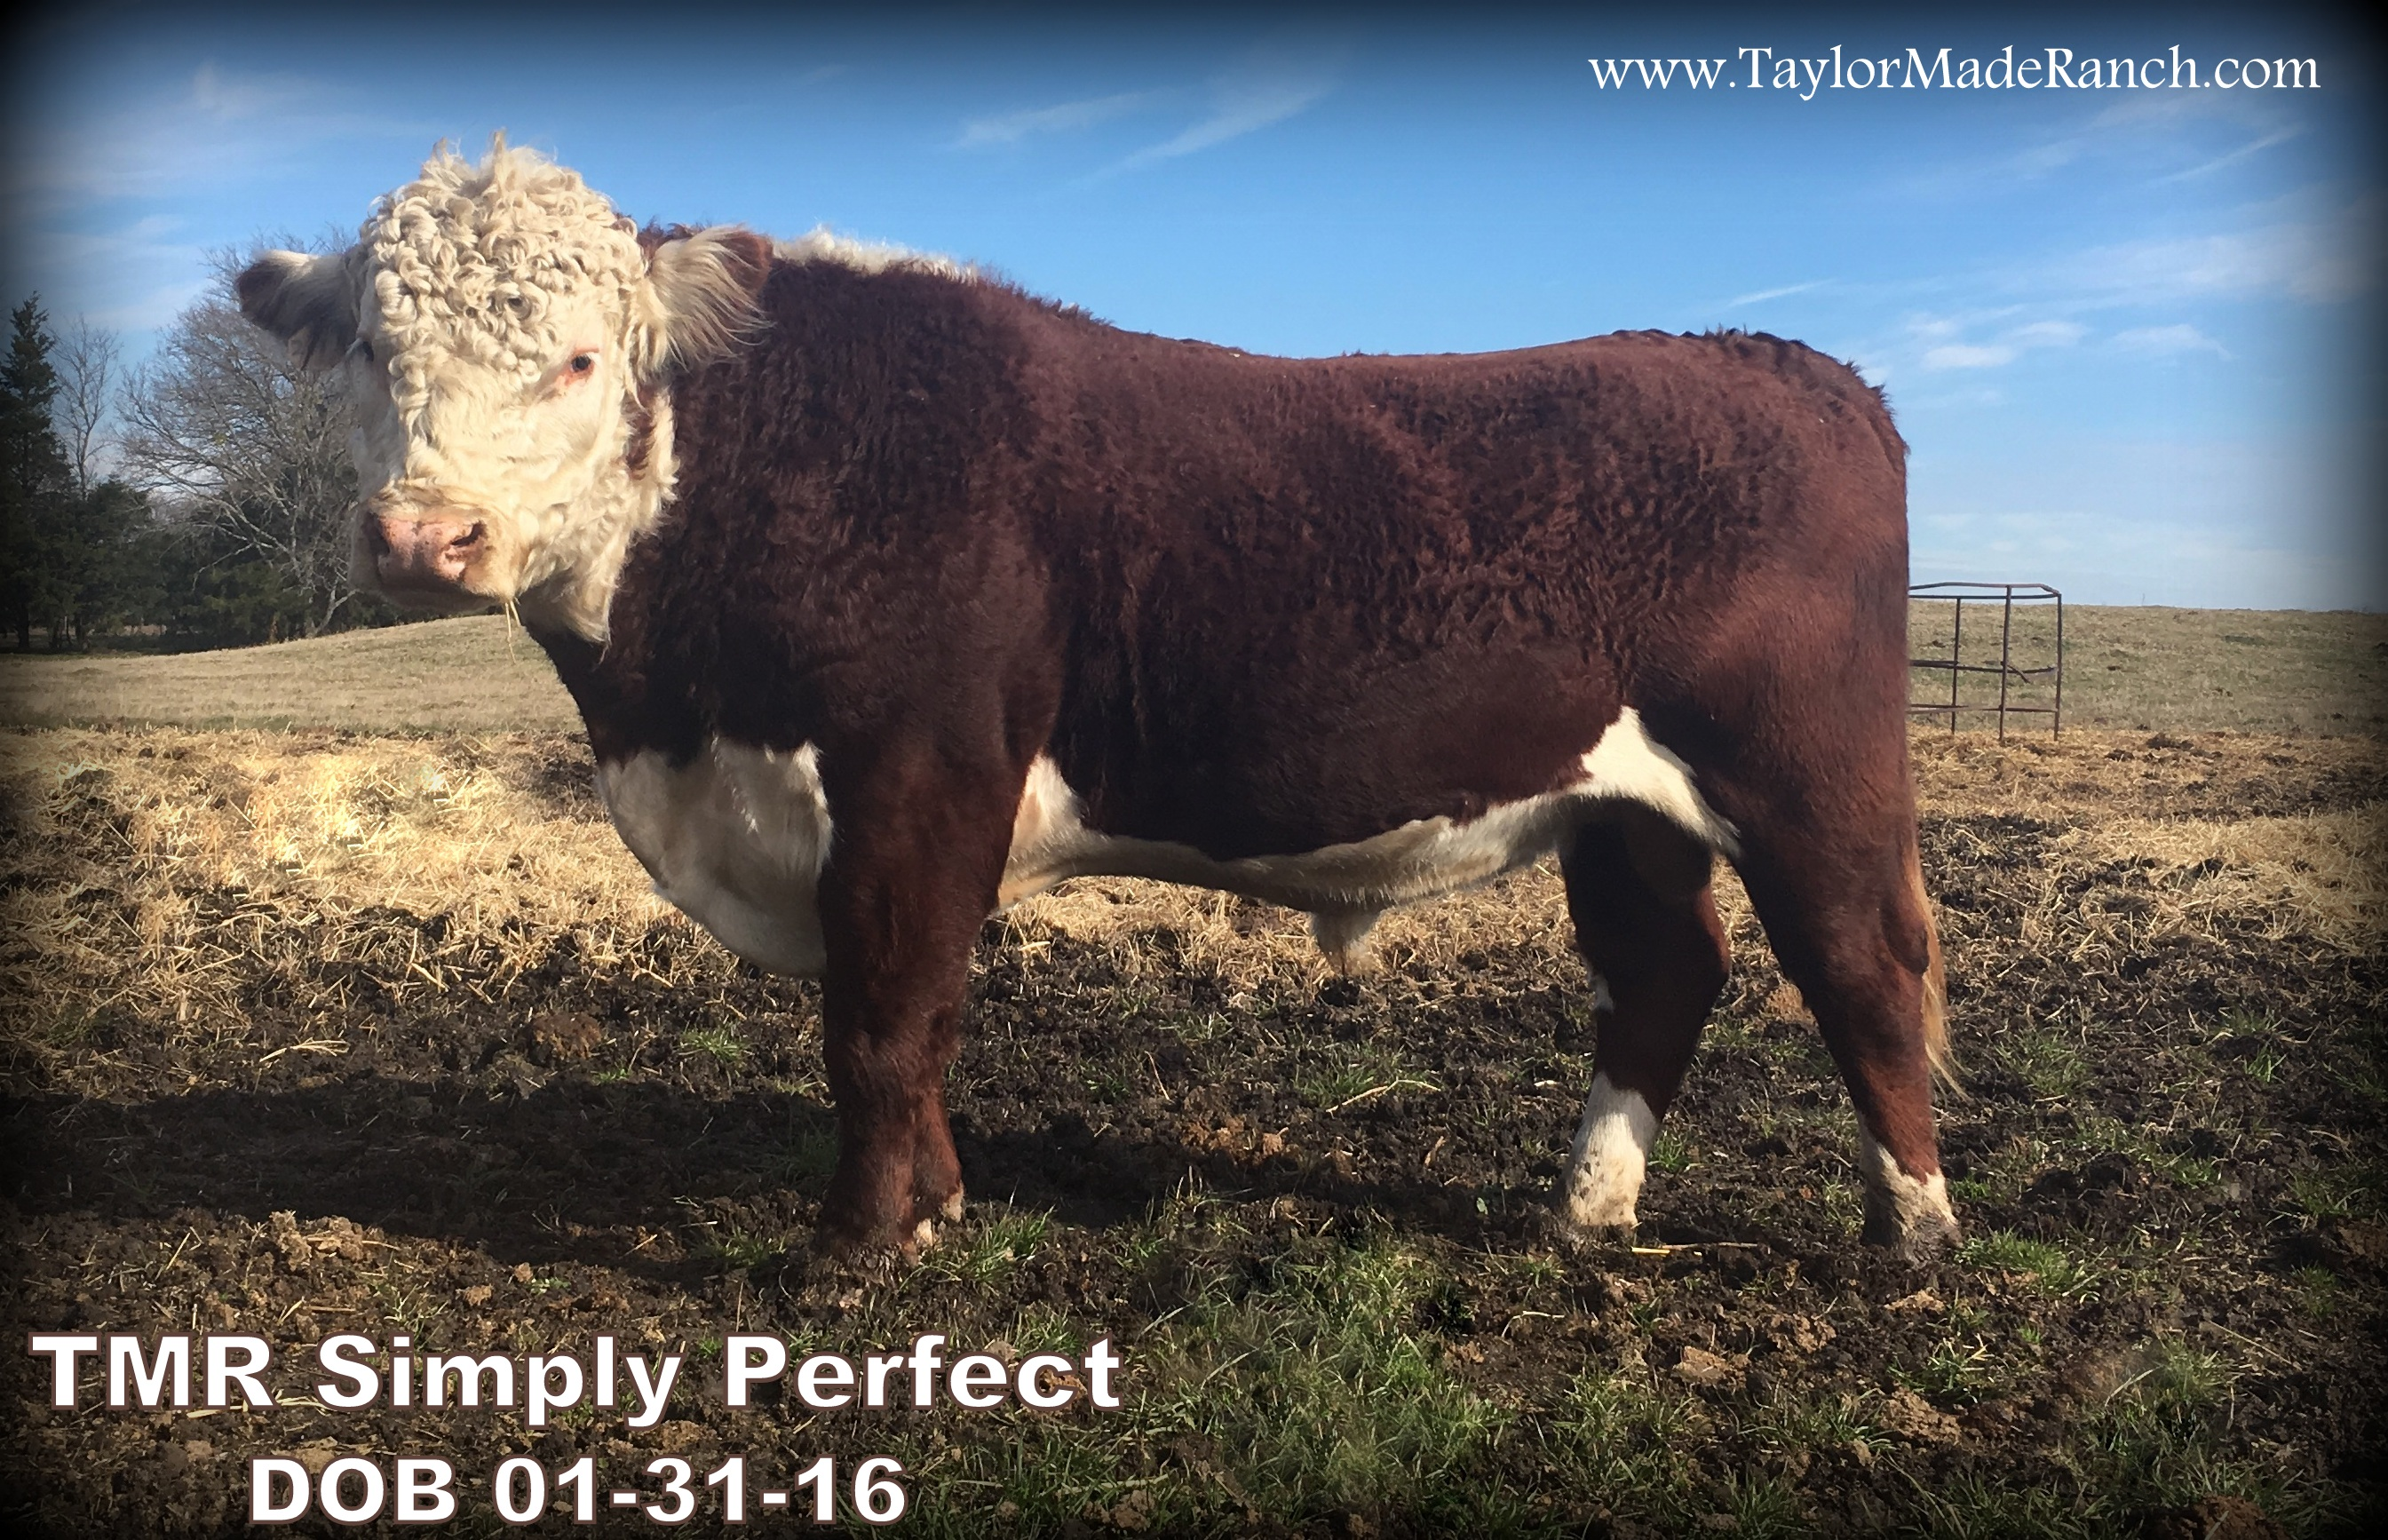 TMR Simply Perfect - Registered Polled Hereford Bull from Taylor-Made Ranch, LLC